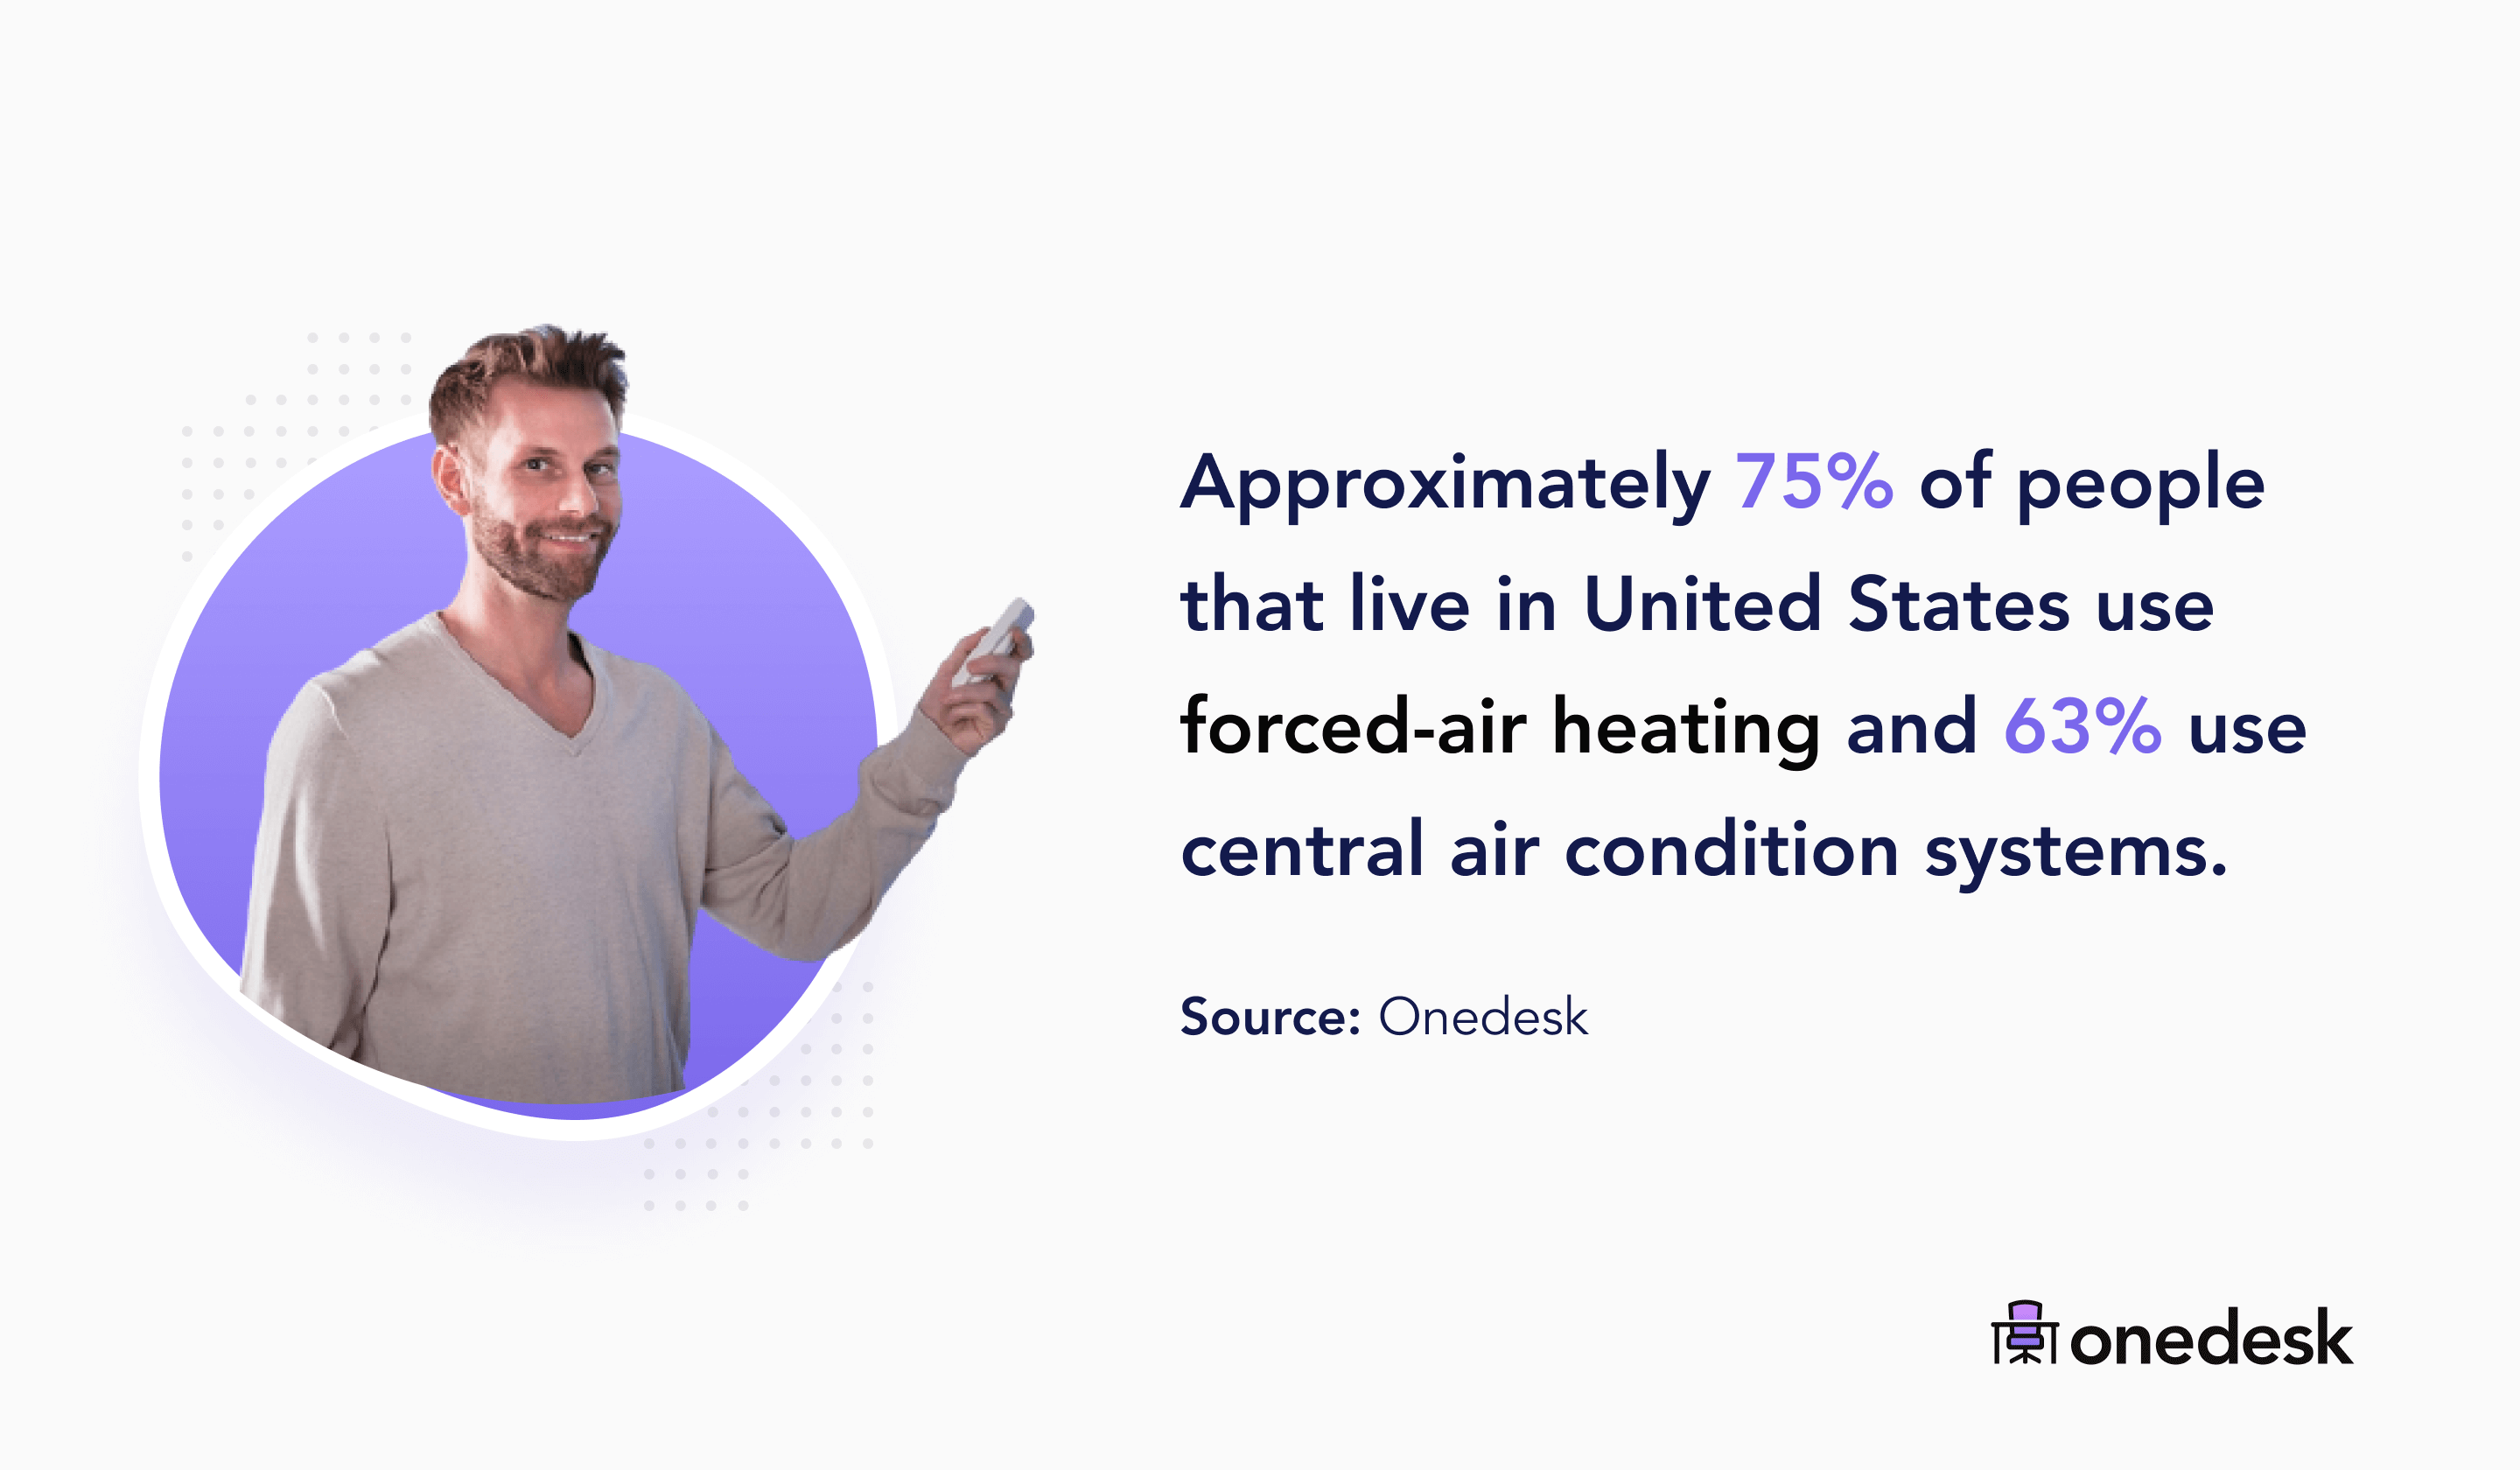 75% of people in the US use forced air heating